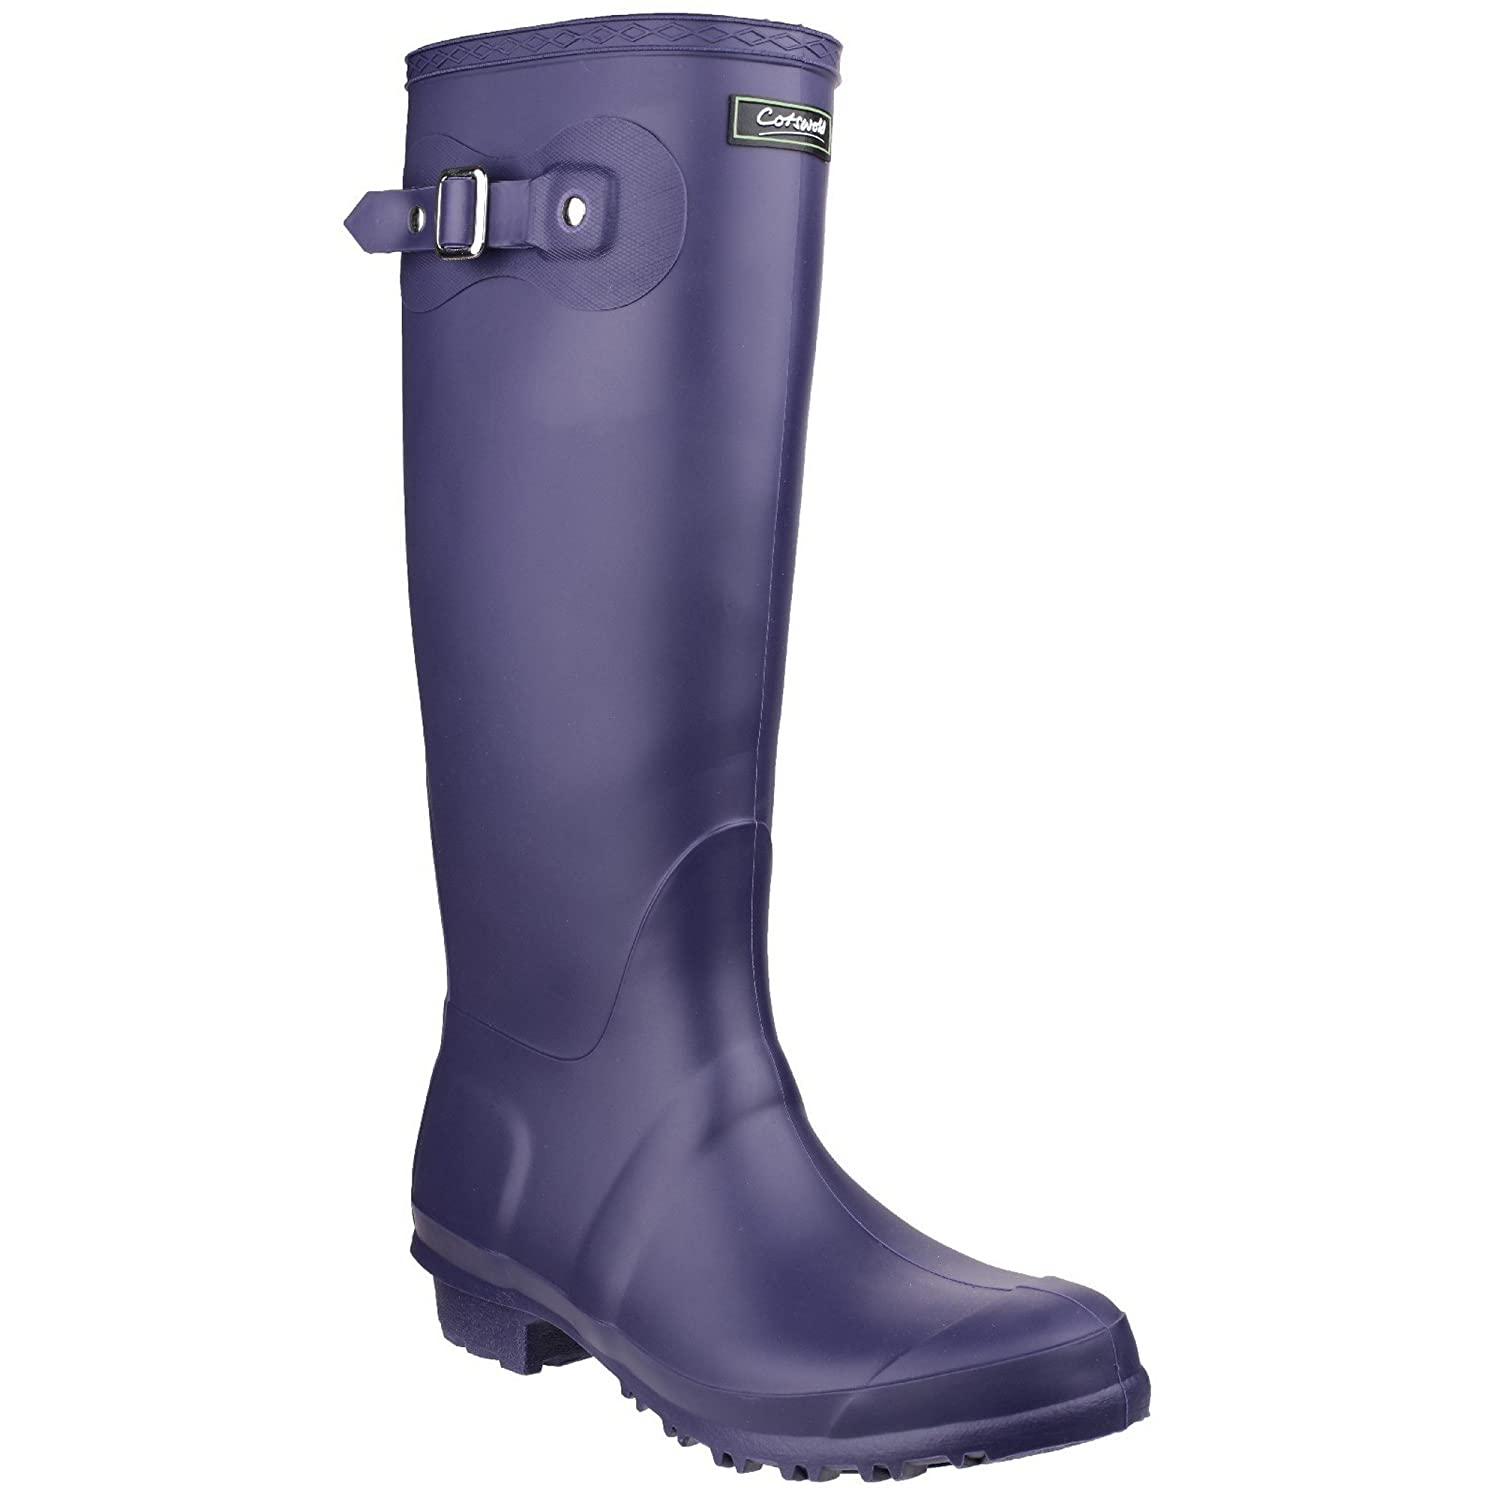 Cotswold Sandringham Buckle-Up Womens Wellington Boots B00BT4UIUS 6 M US|Purple